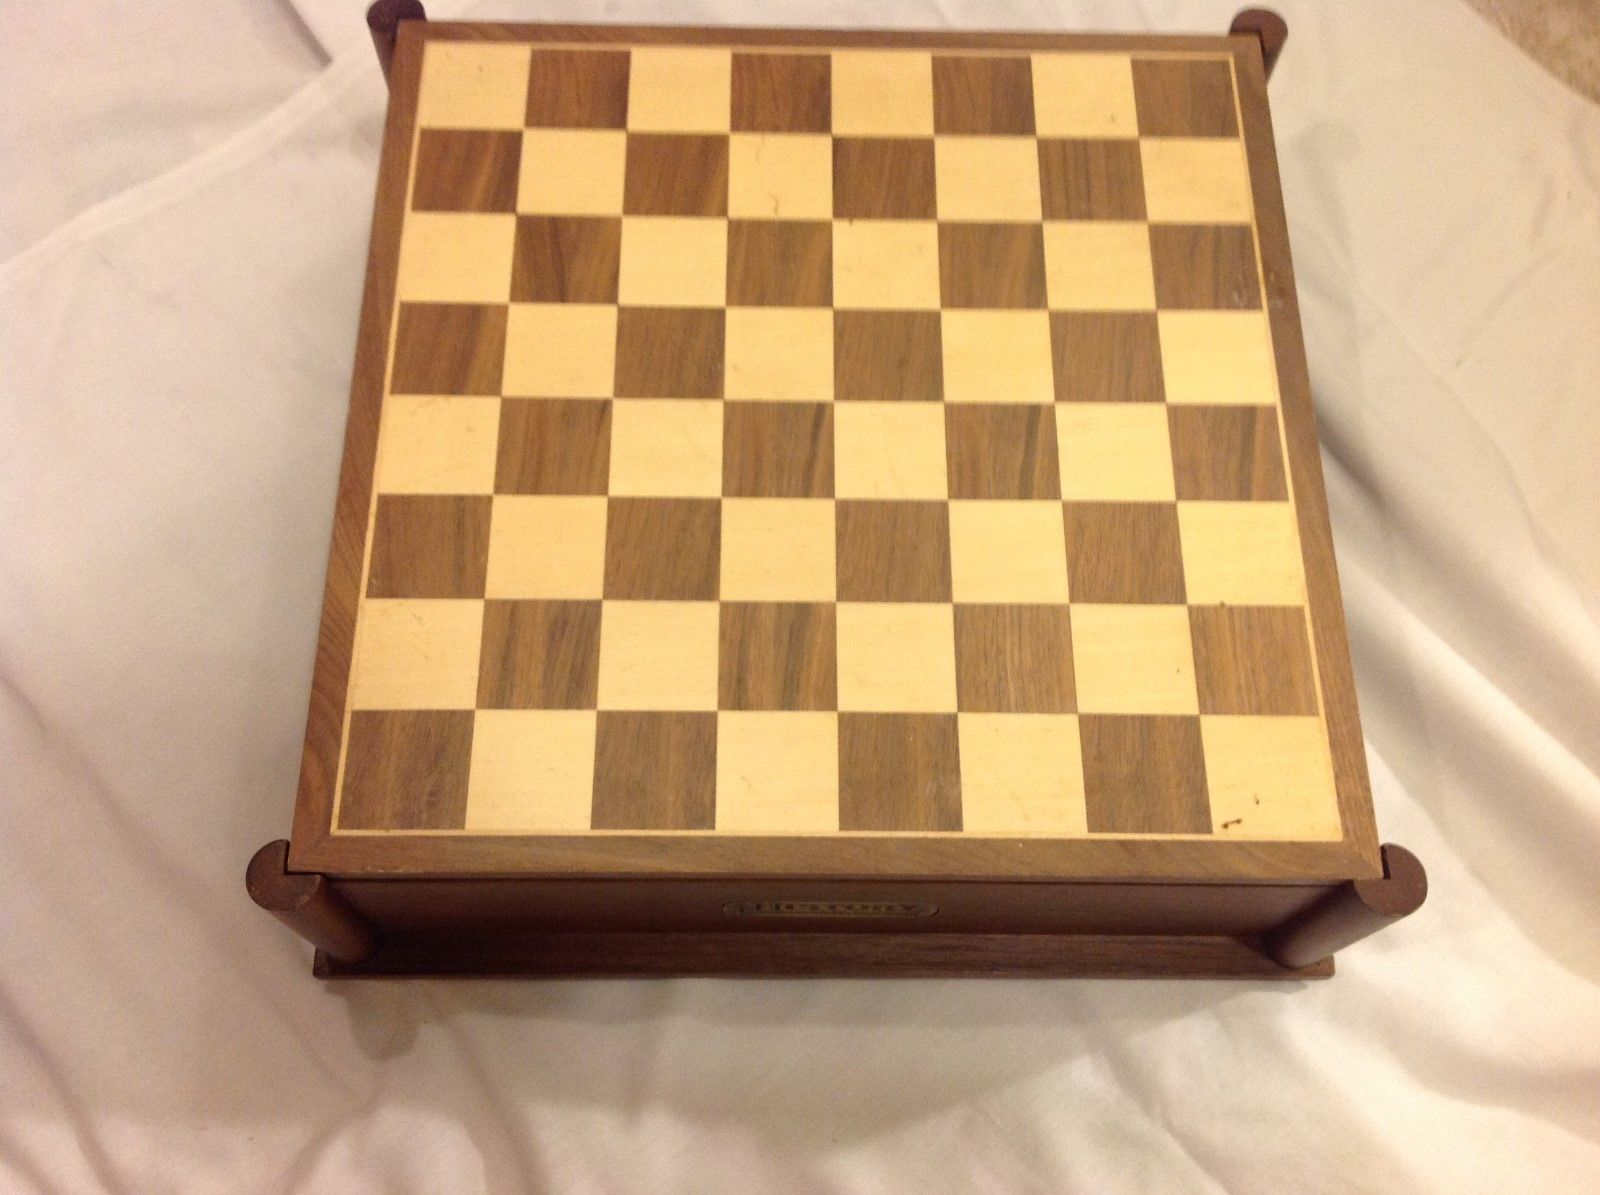 History Channel Life Member Civil War Chess/Game Set